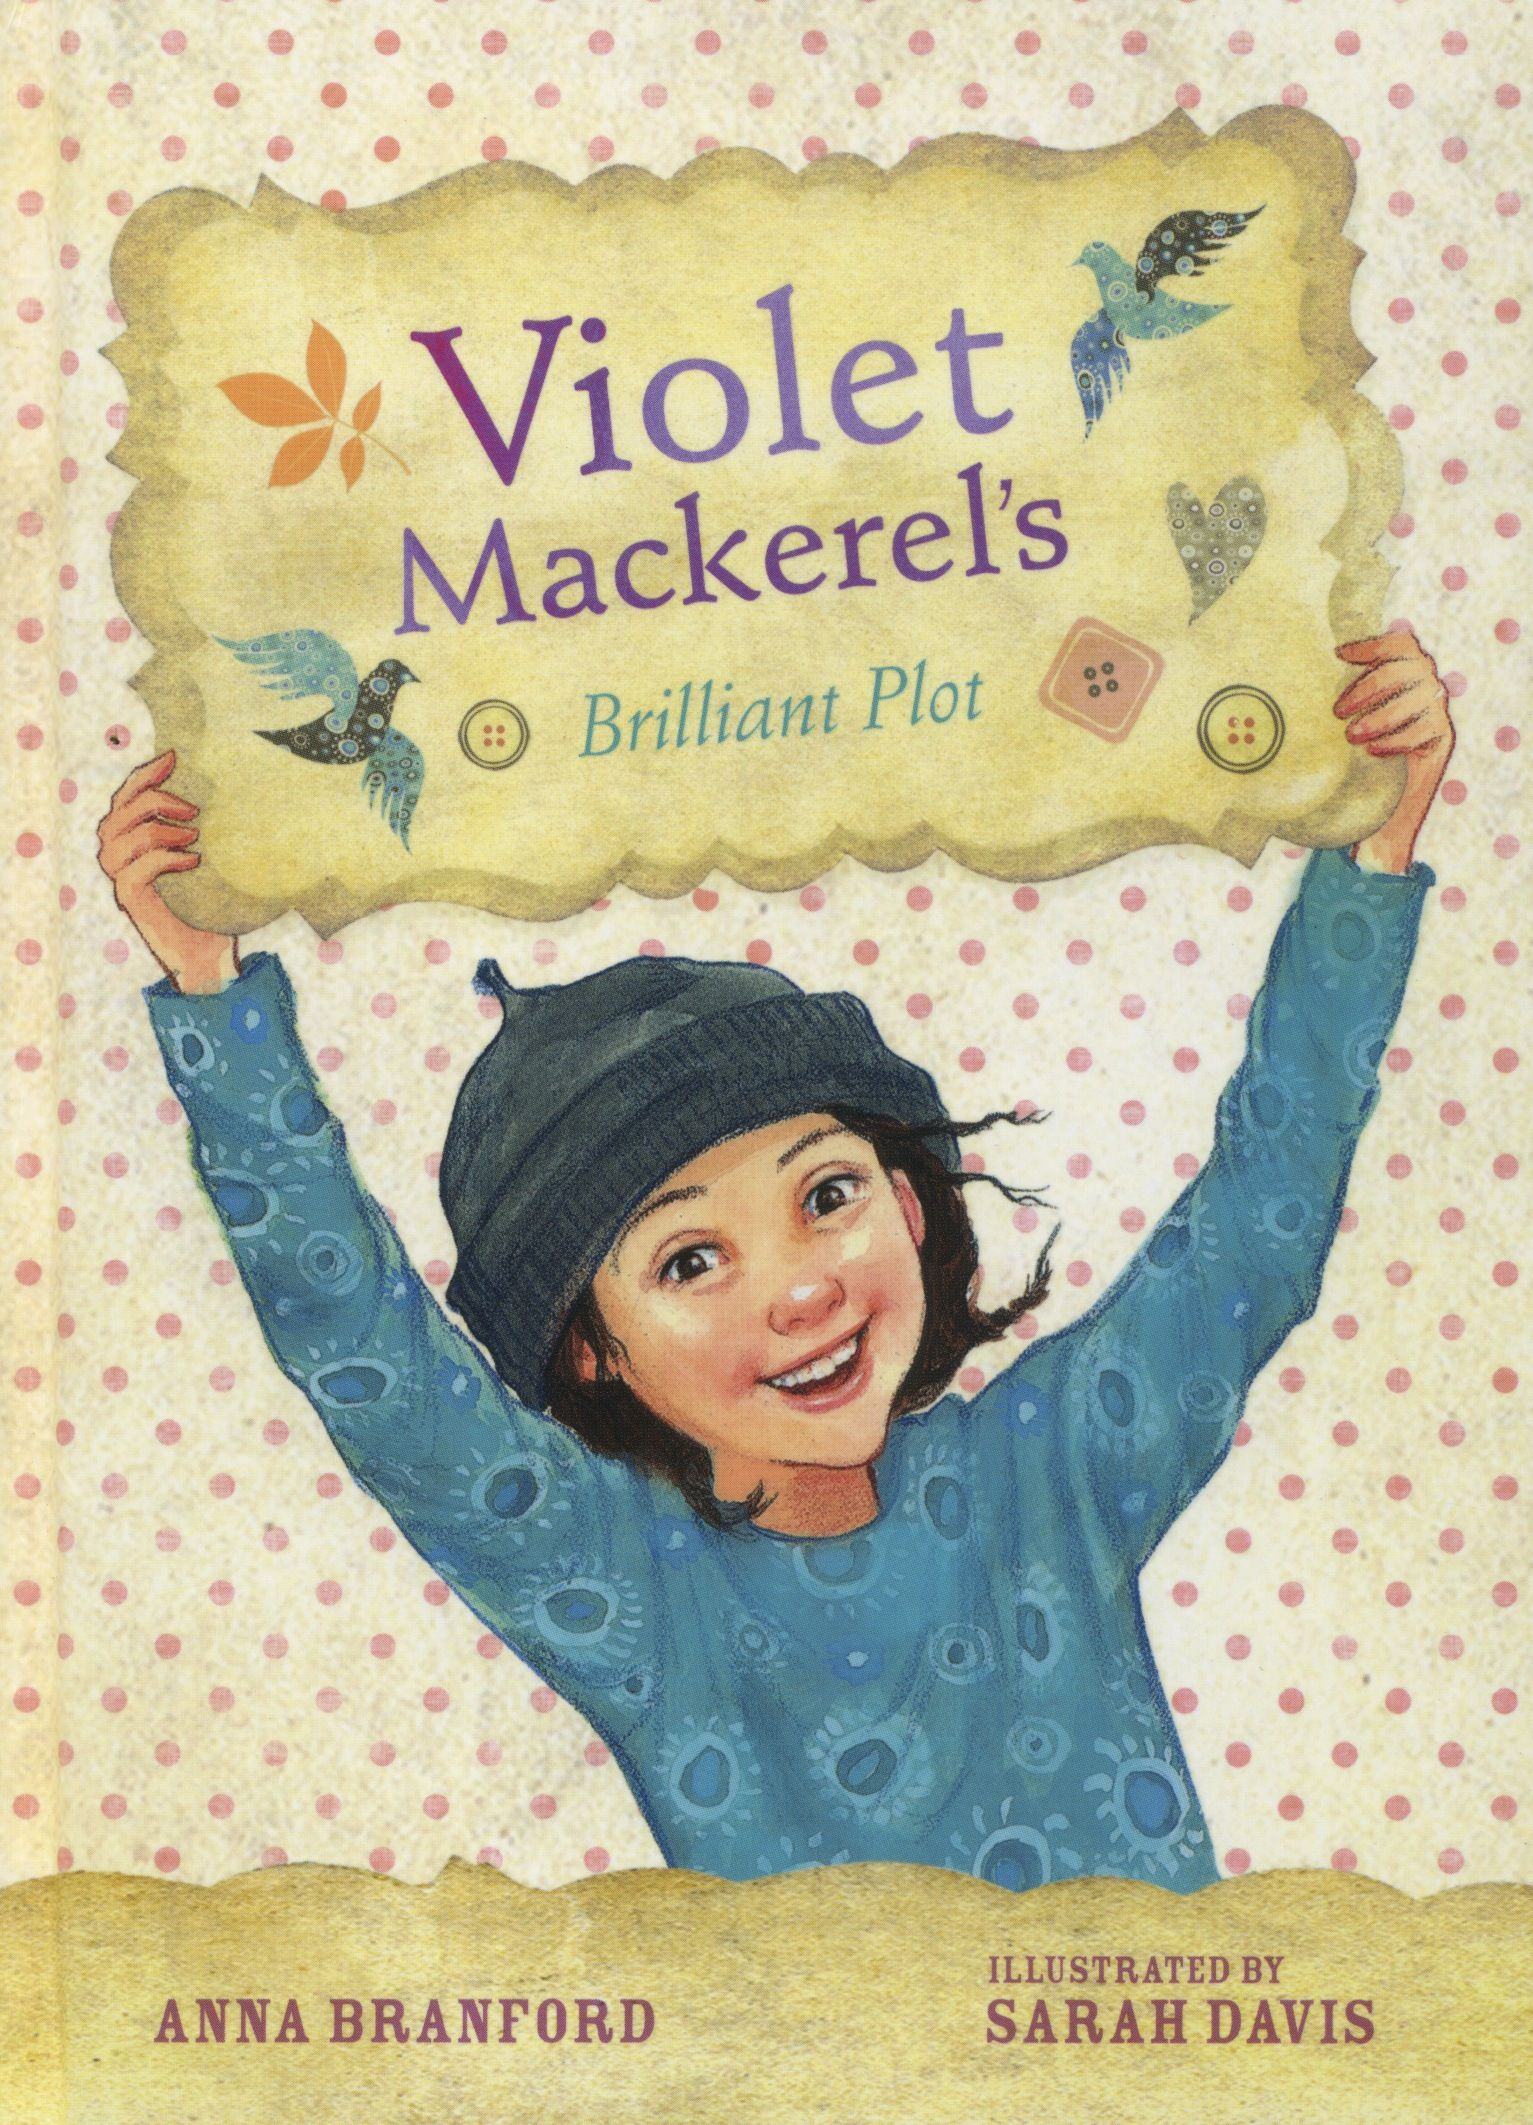 Violet Mackerel's Brilliant Plot by Anna Branford CBCA Shortlist 2011 Young Readers.  FREE Unit of Work for Ages 7-10